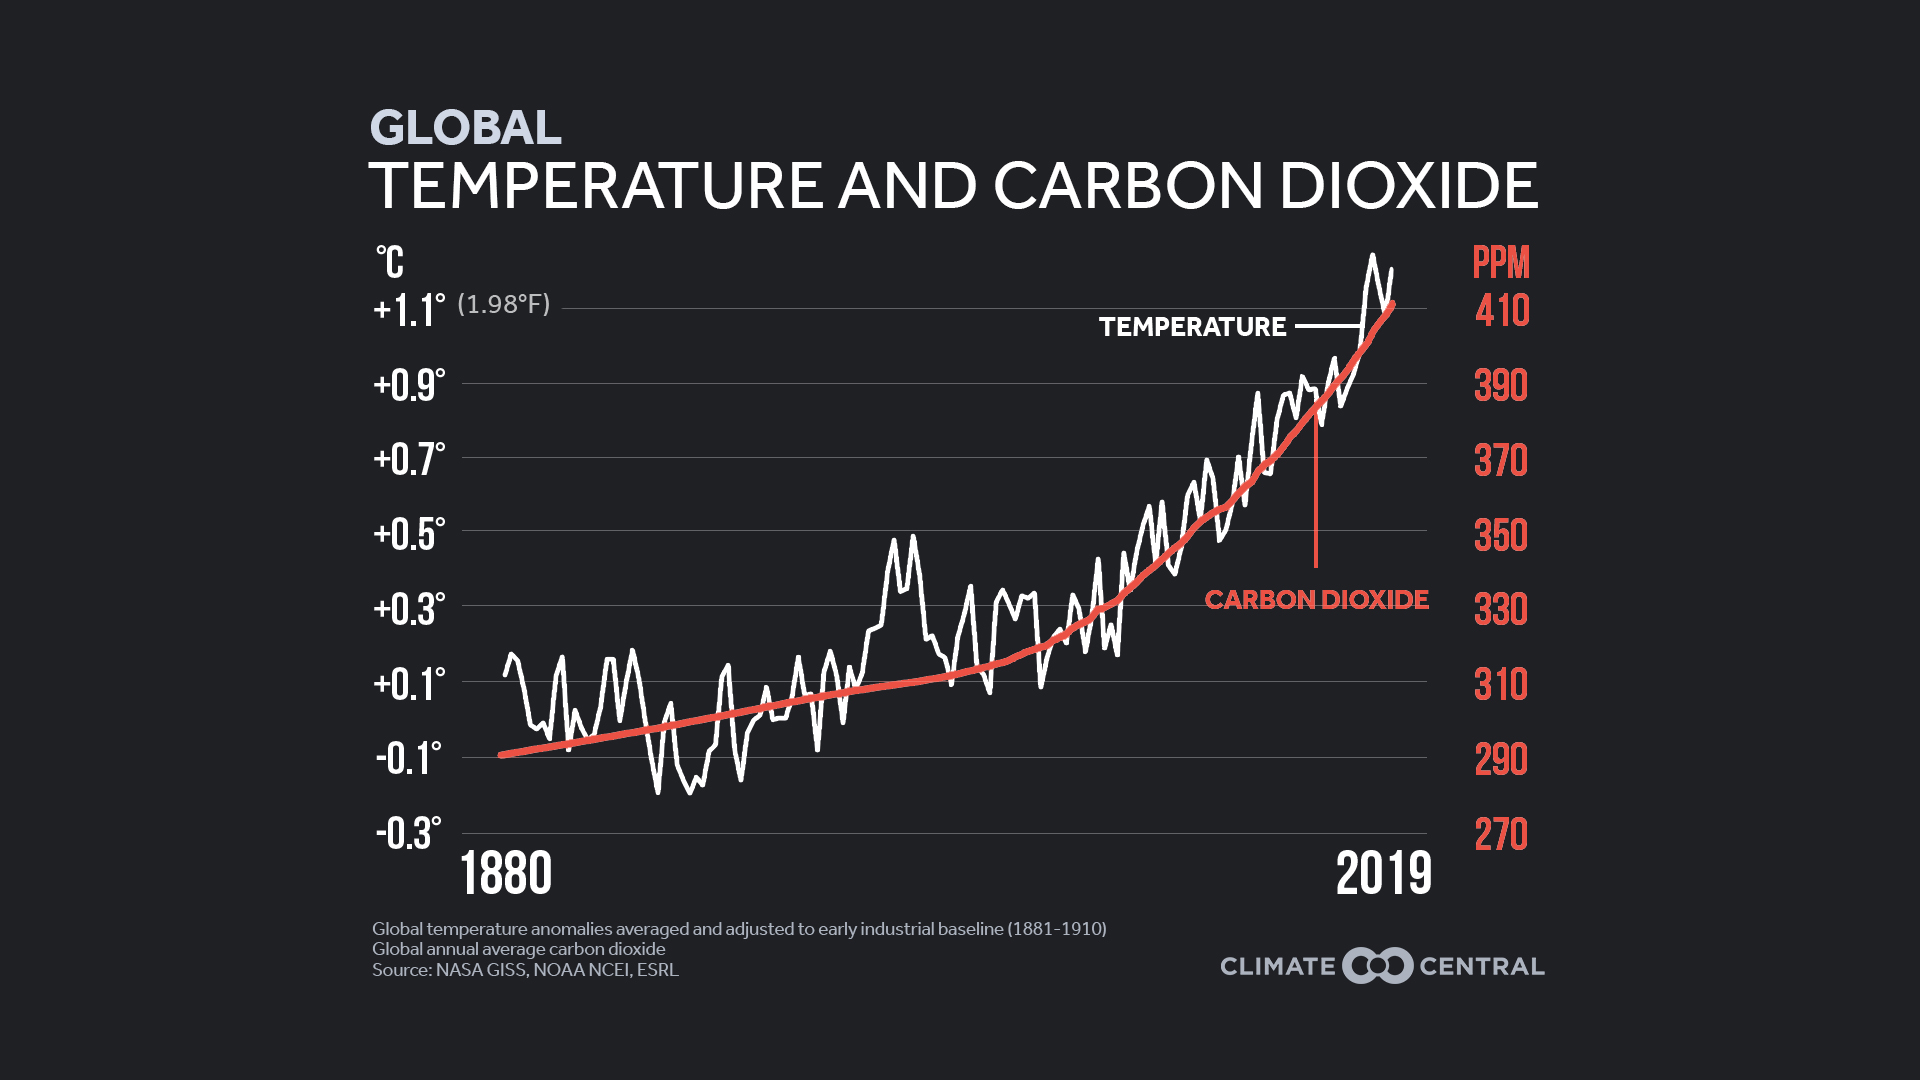 800,000 Years of CO2 Levels